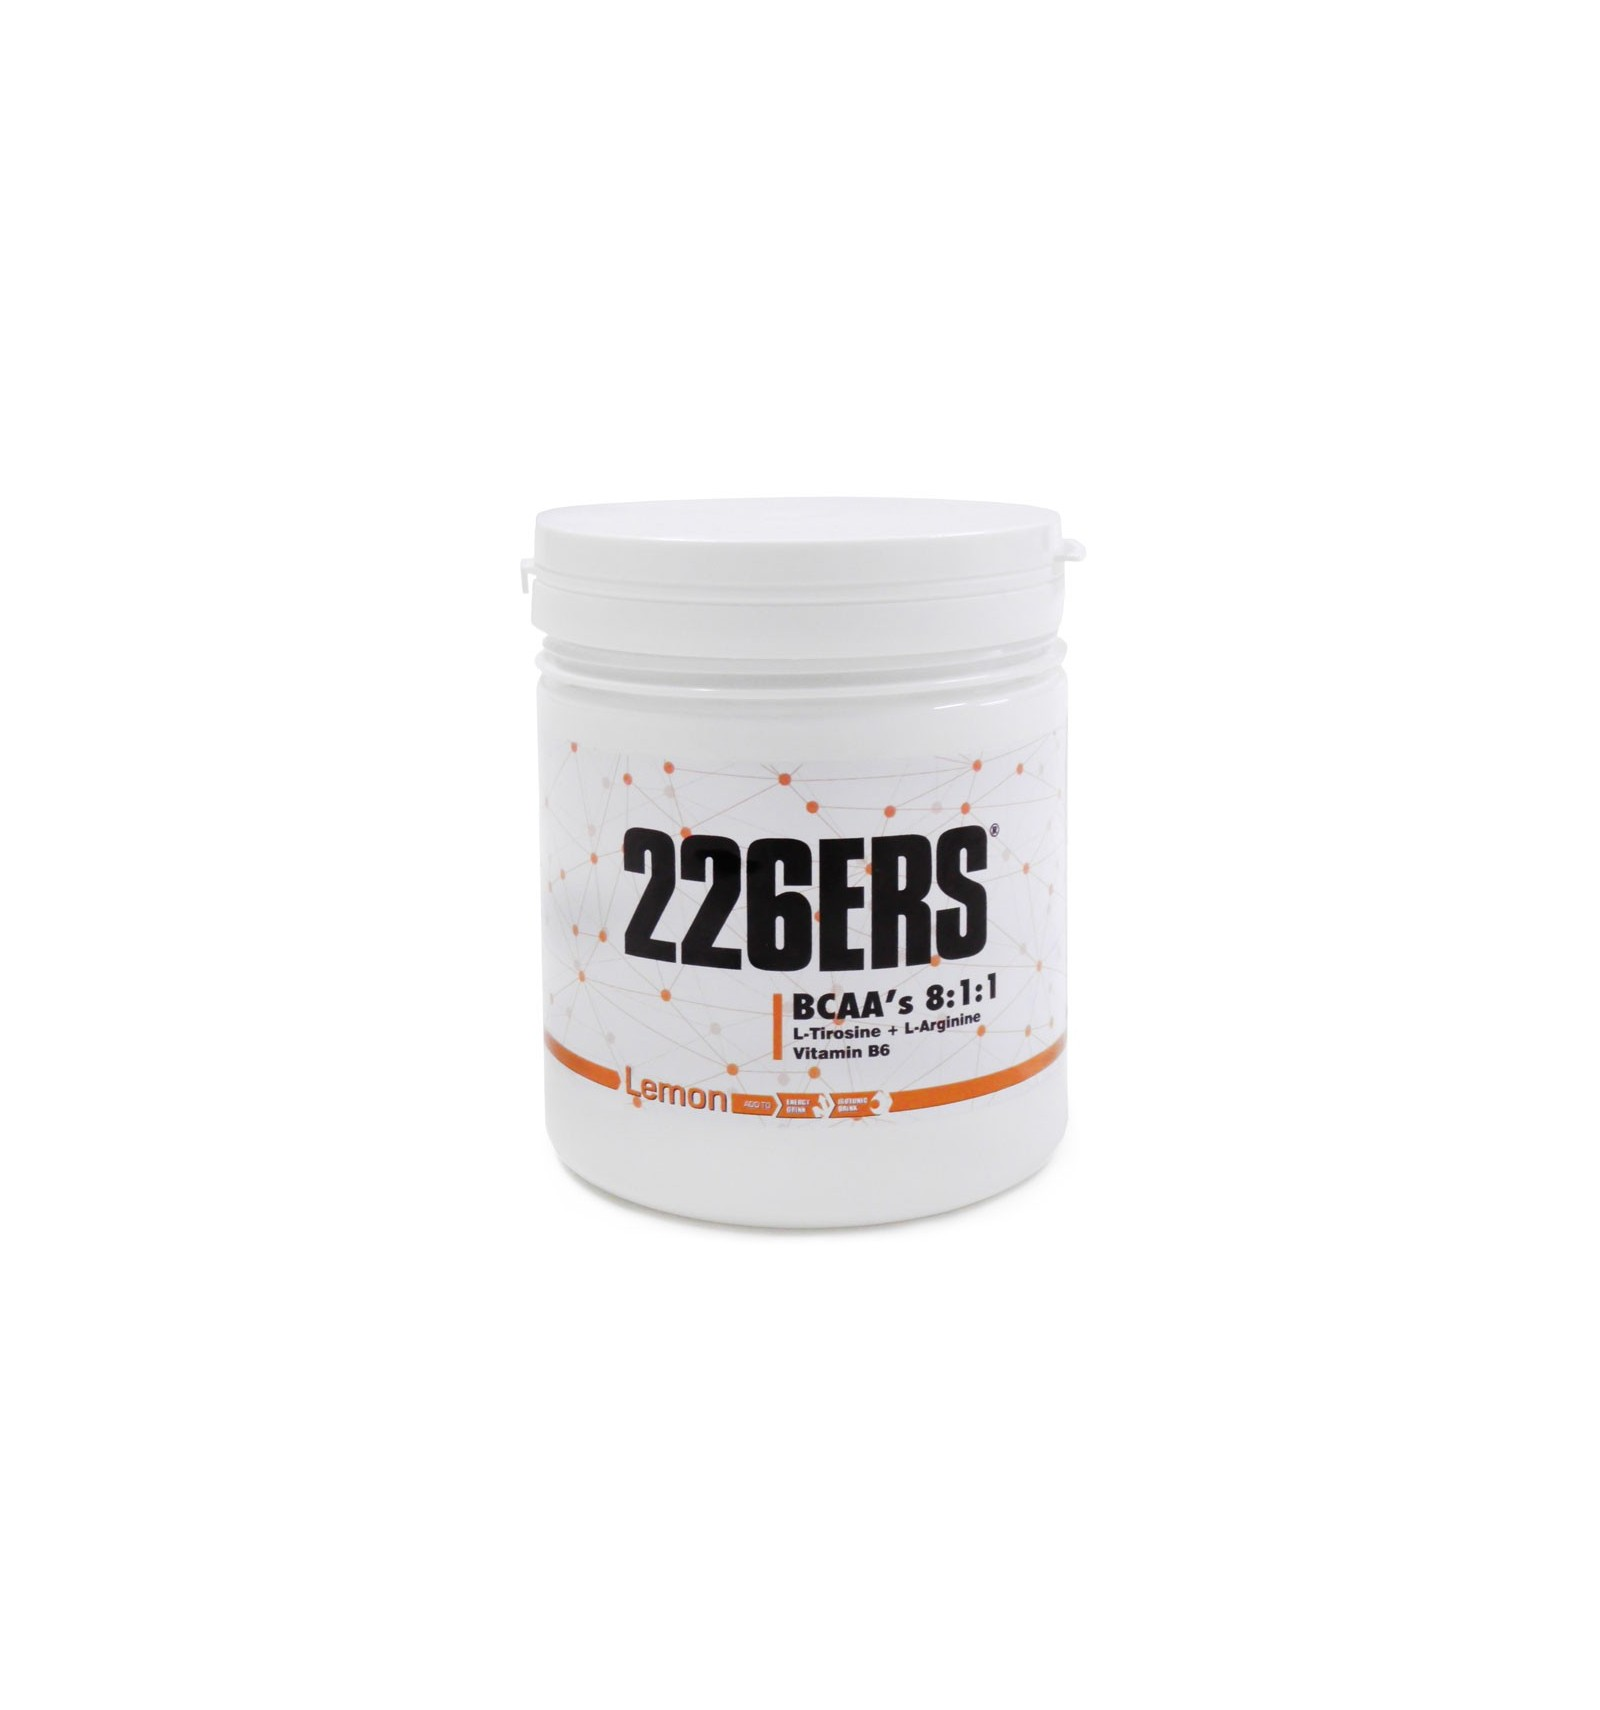 PW-BC-300-LM 226ERS BCAA'S 300G LEMON - 226ERS